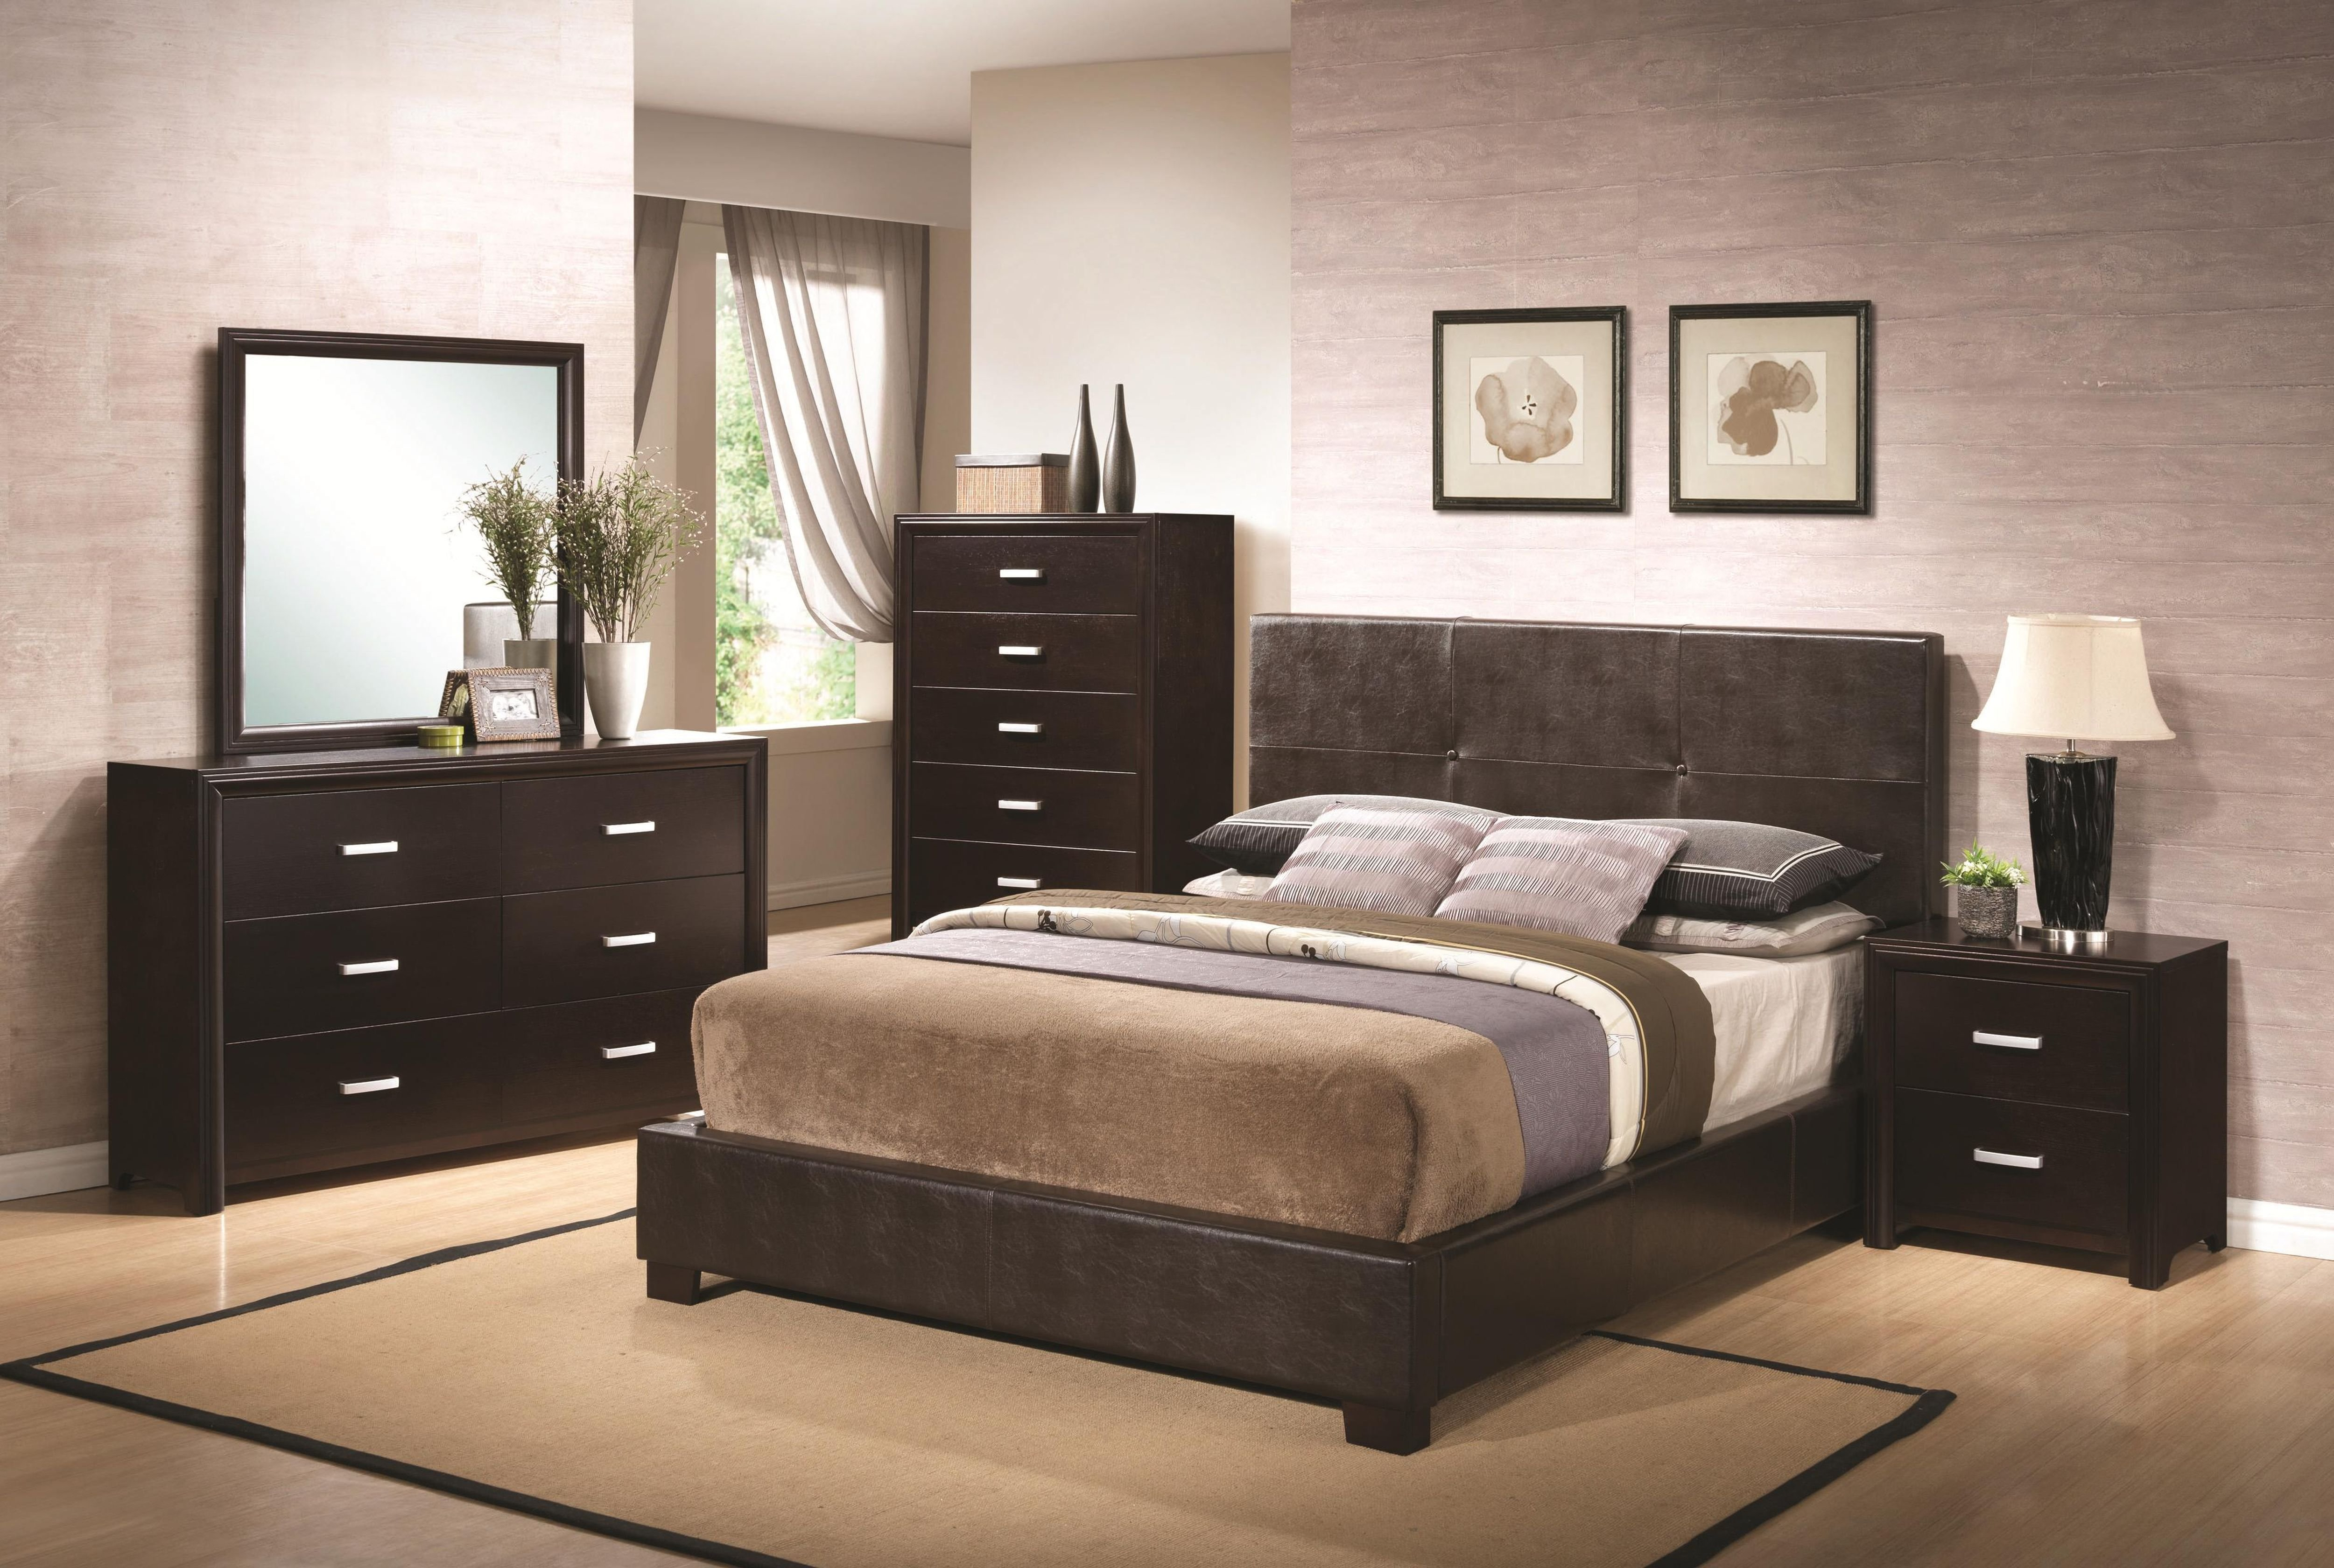 Best Sets Turkey Ikea Decorating Ideas For Master Bedroom With Pictures